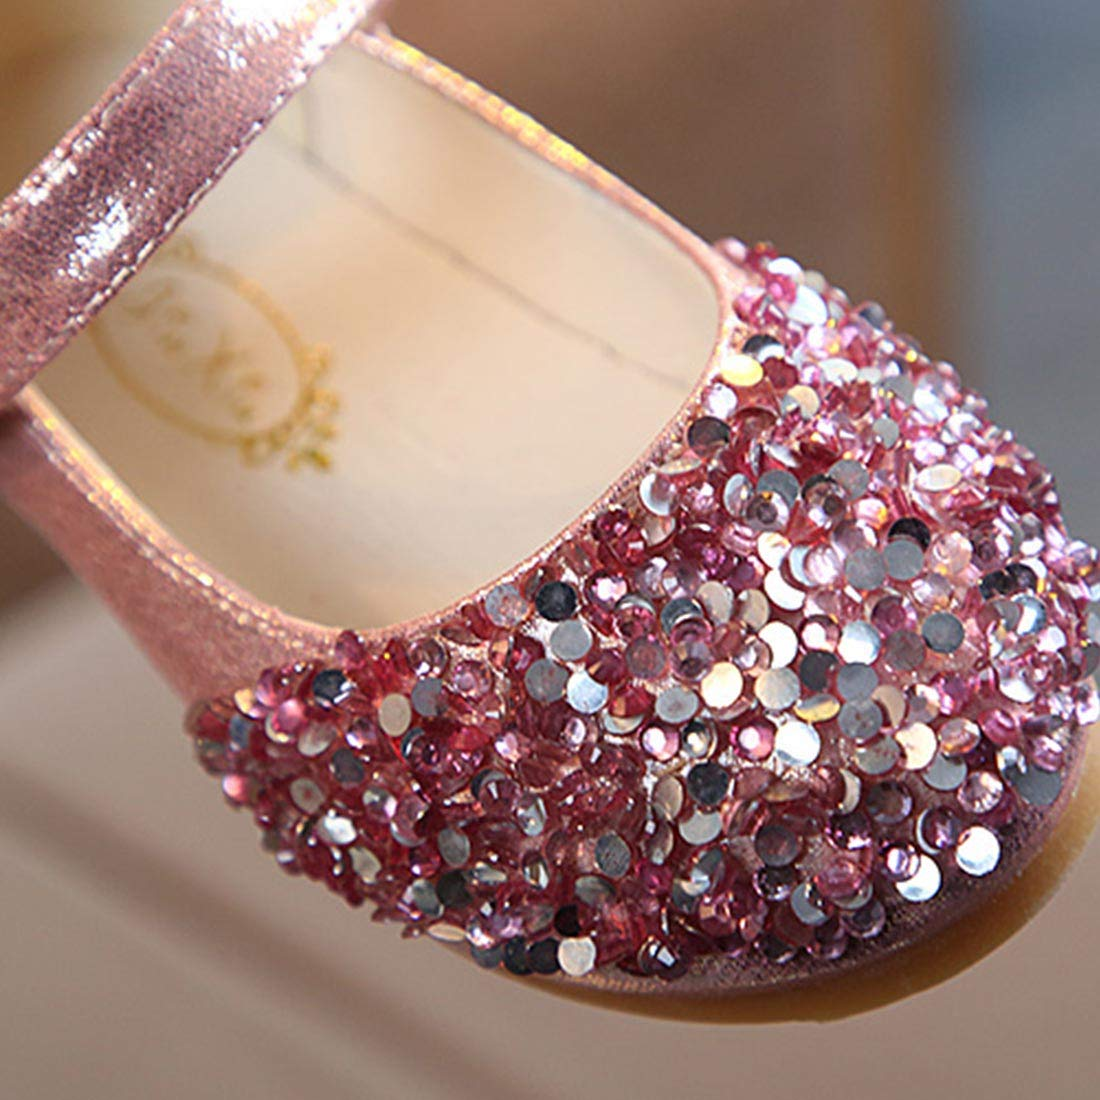 YIBLBOX Sequin Toddler Girls Mary Jane Ballerina Flat Kids Dress Shoes for Formal Wedding Party